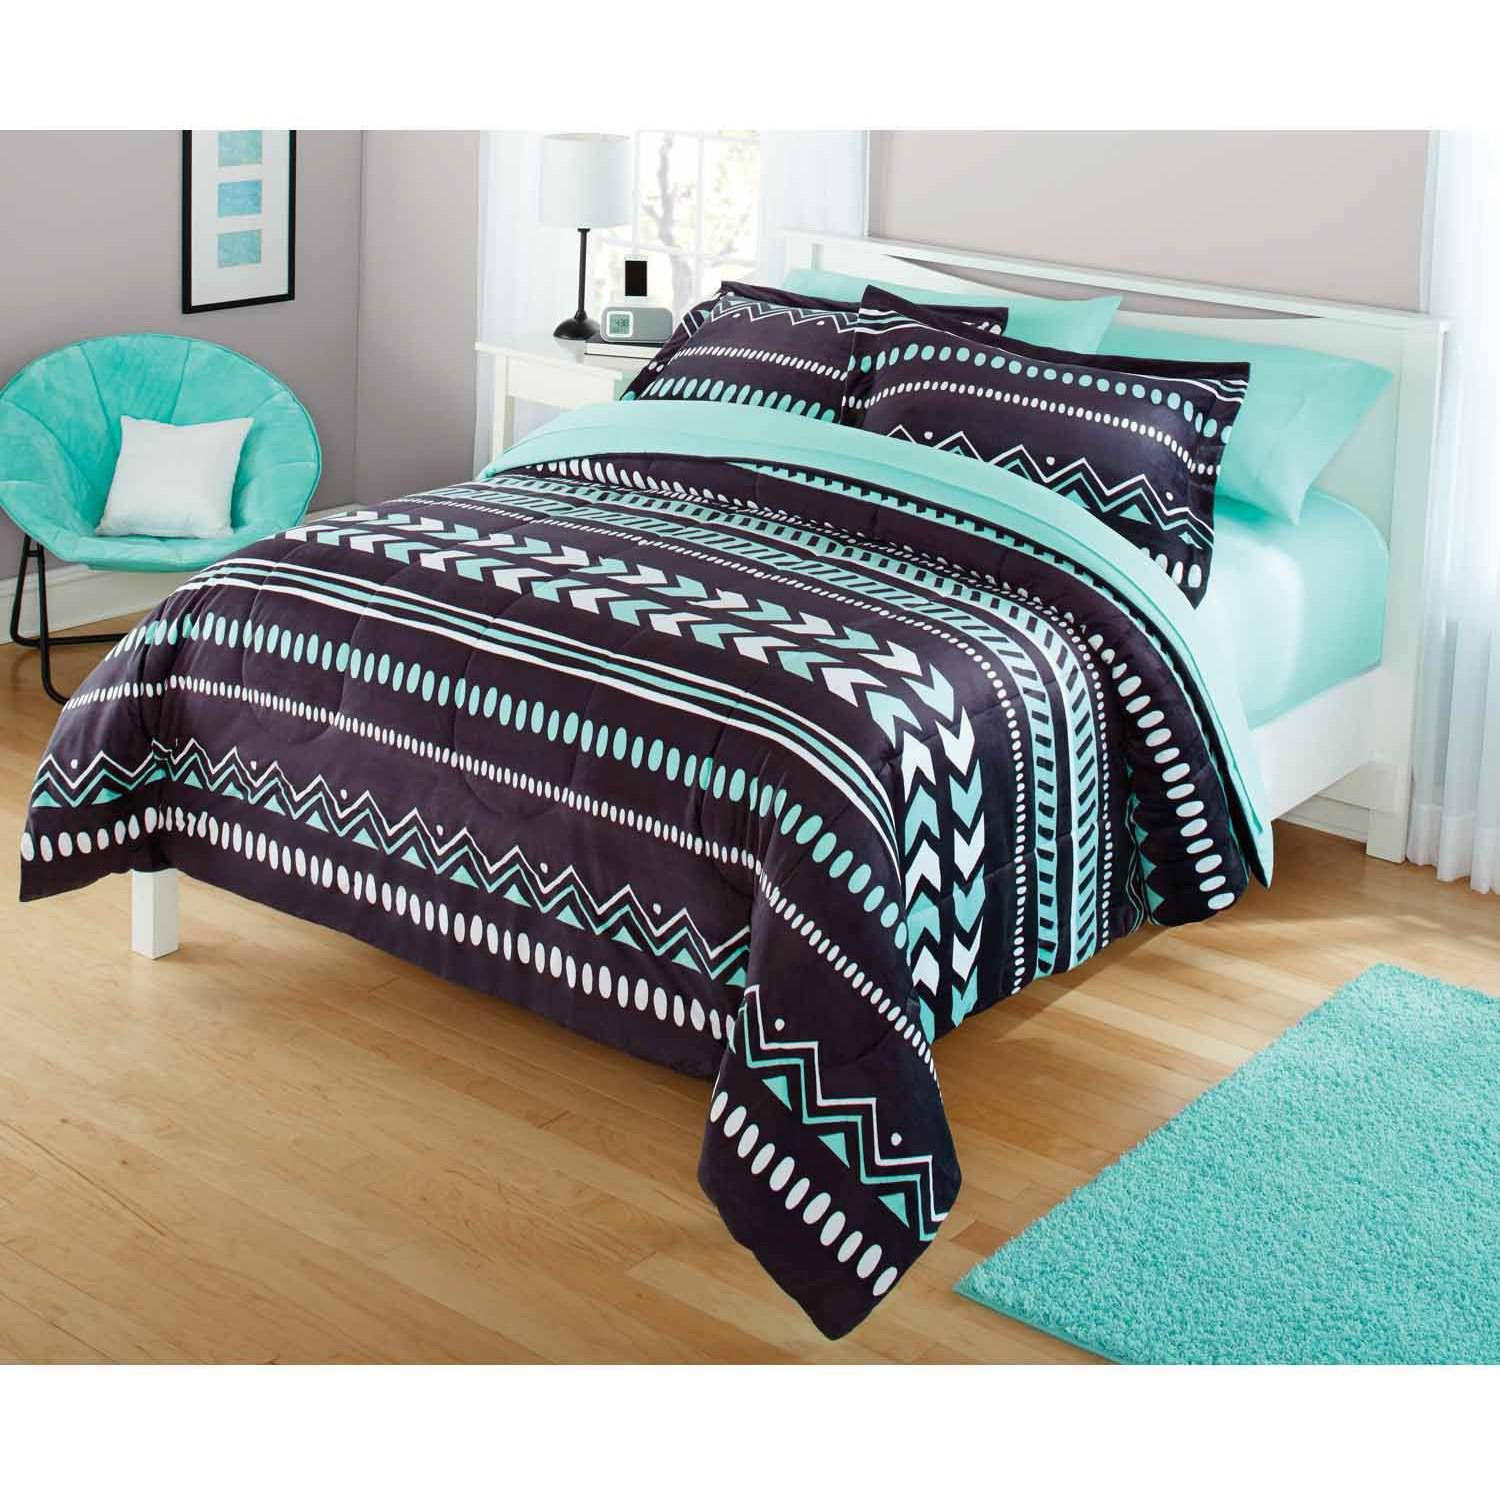 Bed sets for teenage girls zebra - Your Zone Tribal Bedding Comforter Set Walmart Com